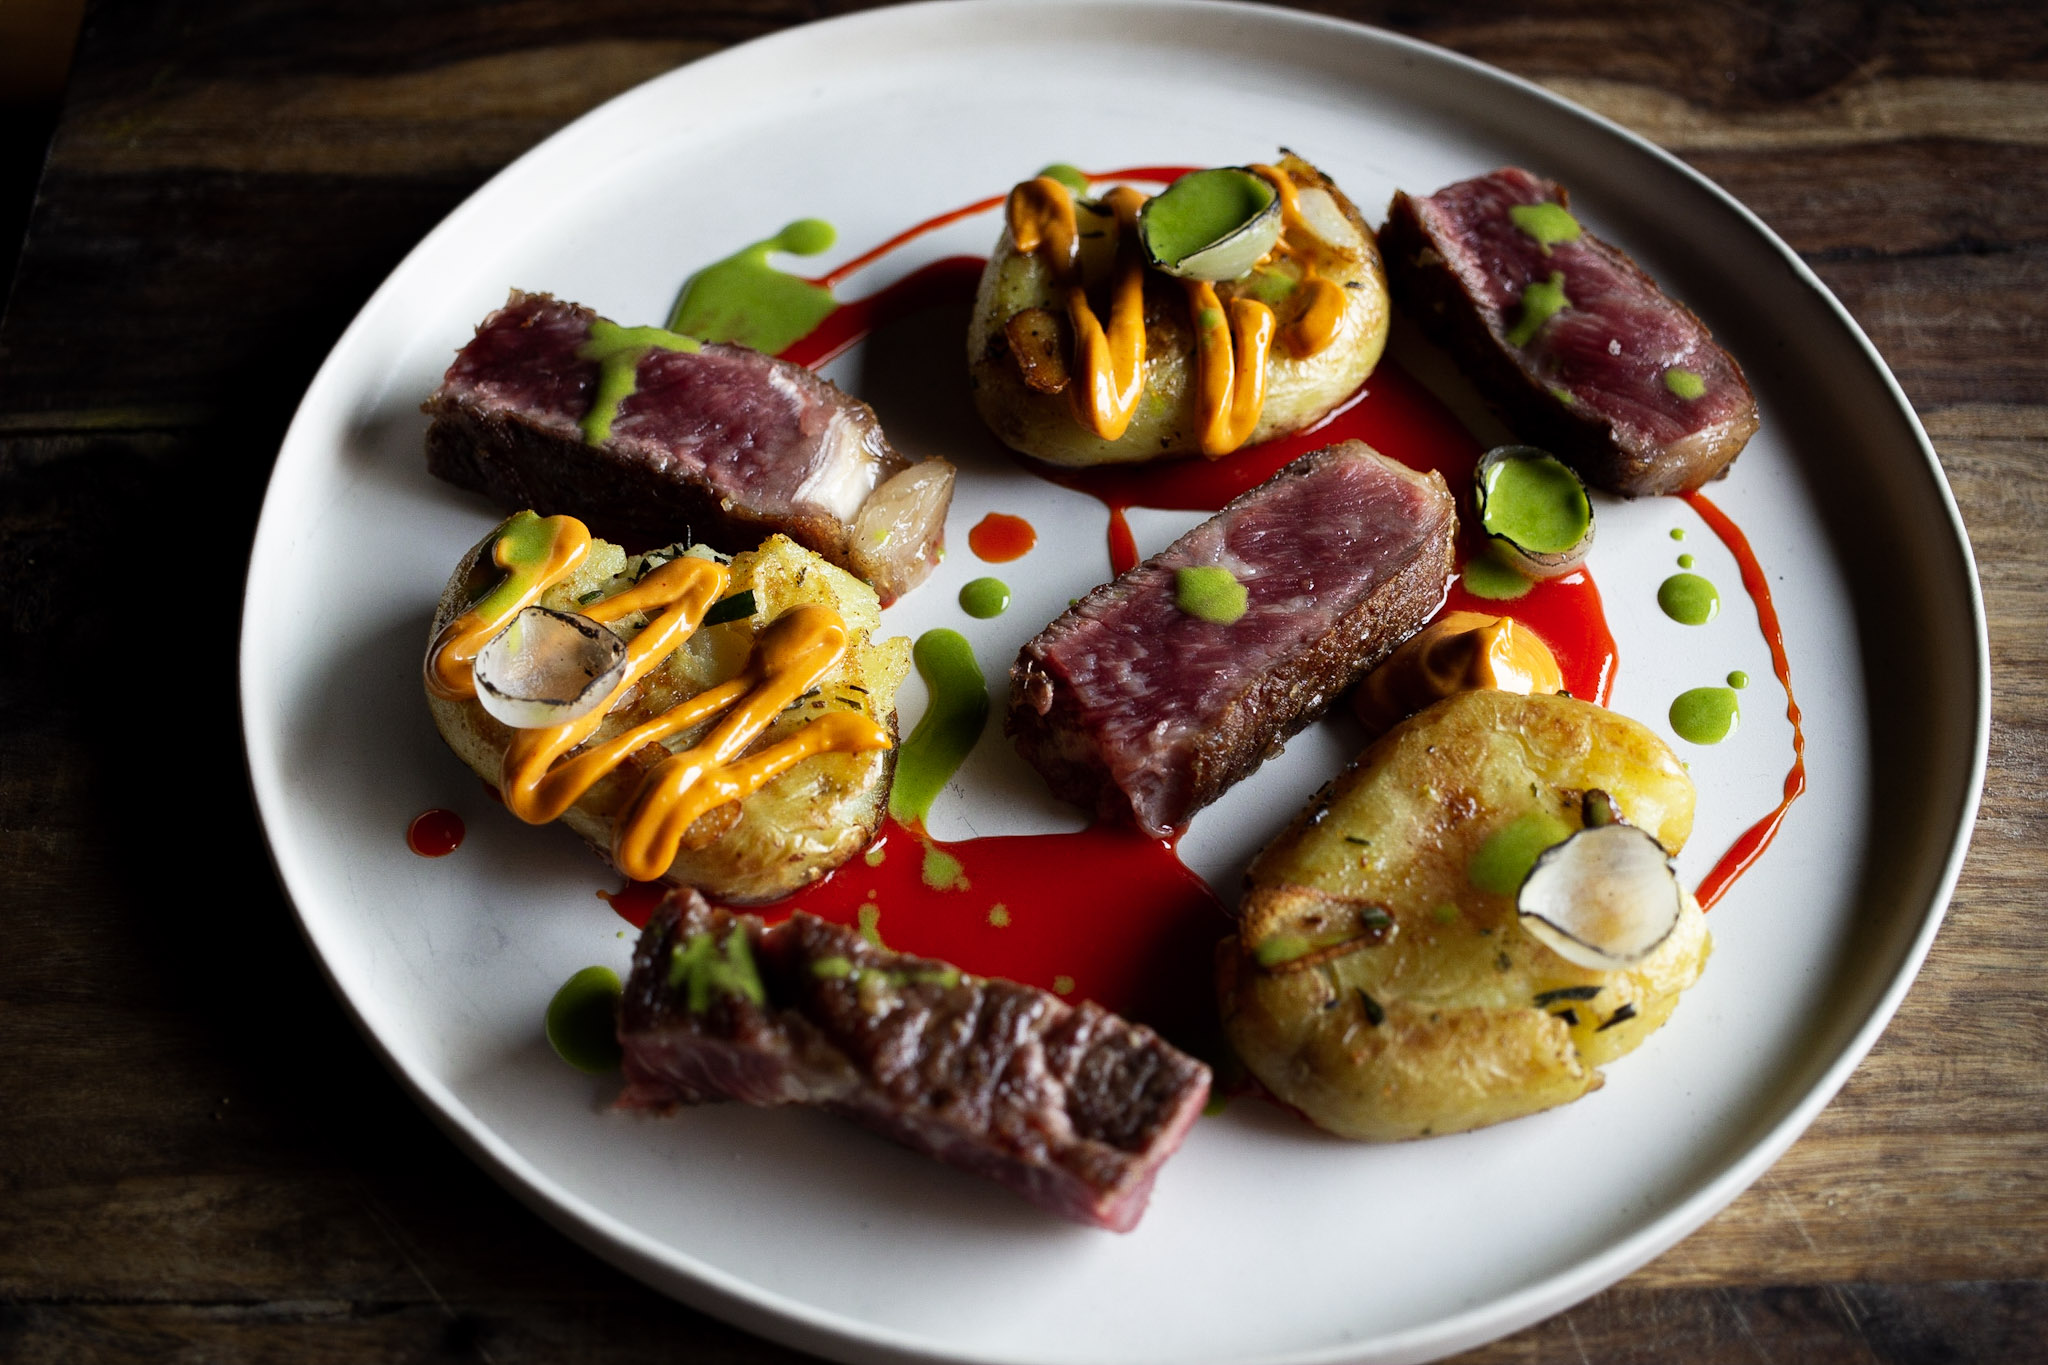 Fran combined all of the above recipes with retired dairy cow beef to create this fantastic dish